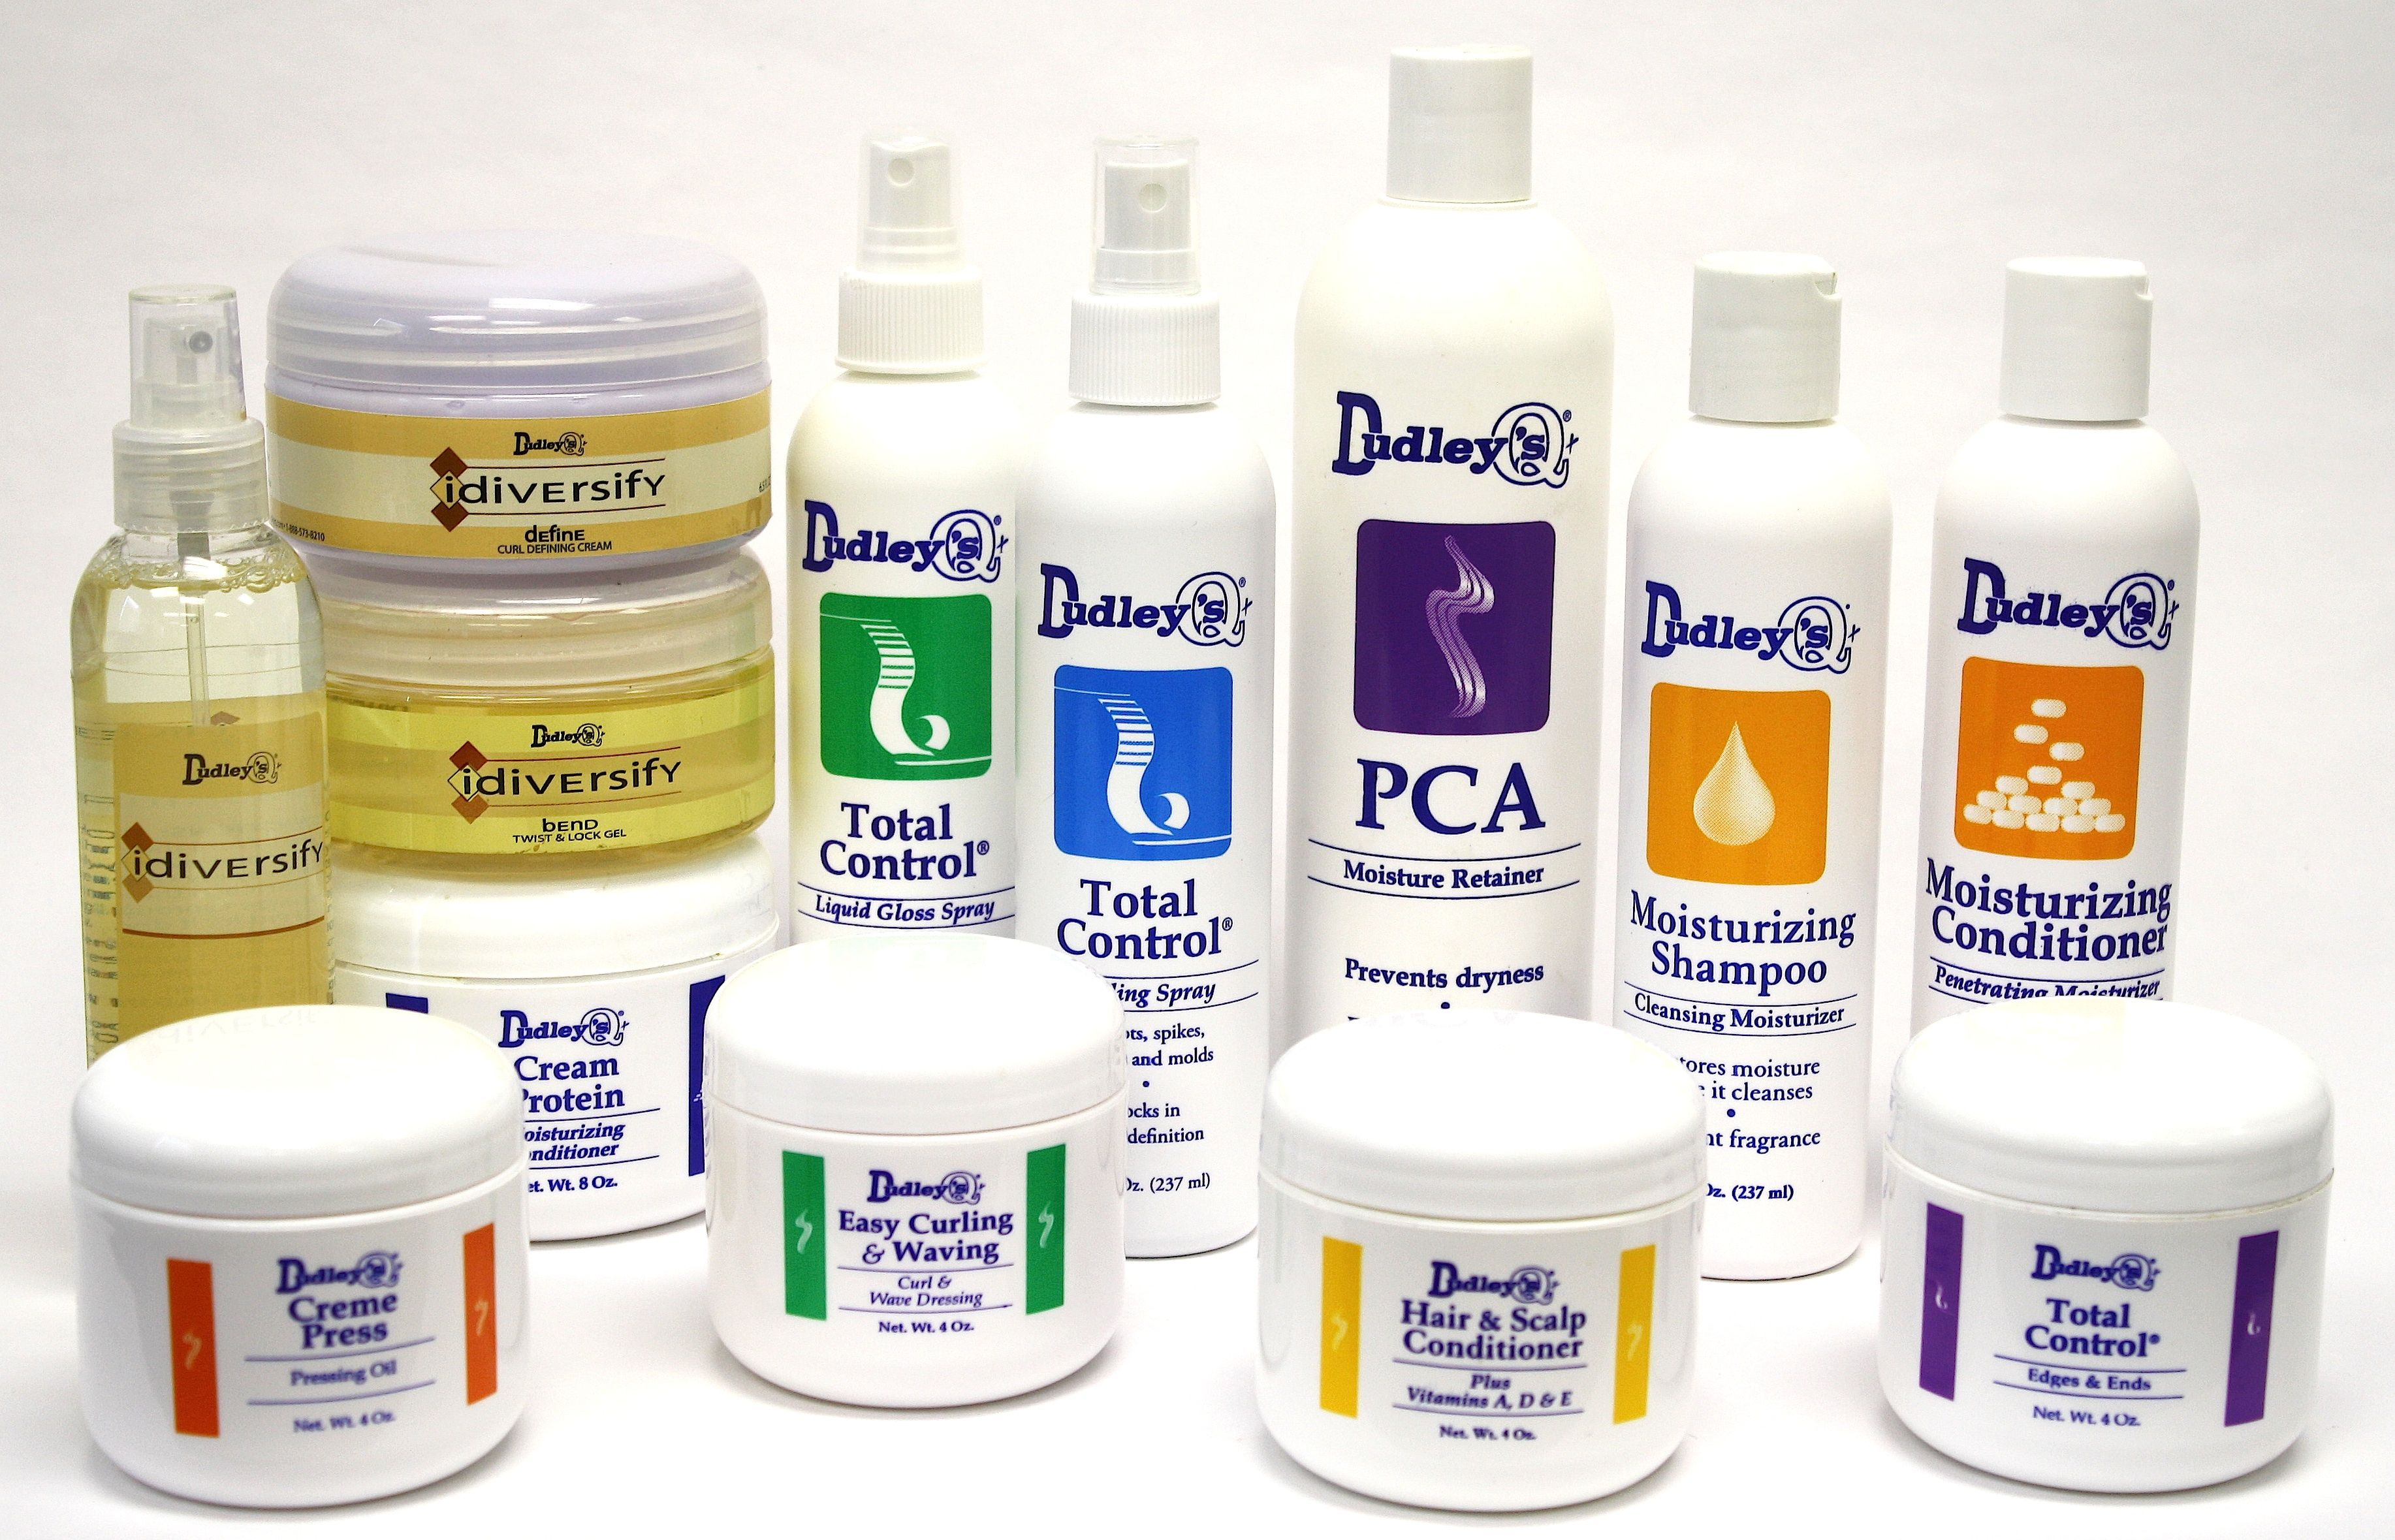 Dudley Home Maintenance Products Keep Hair Healthy And Looking